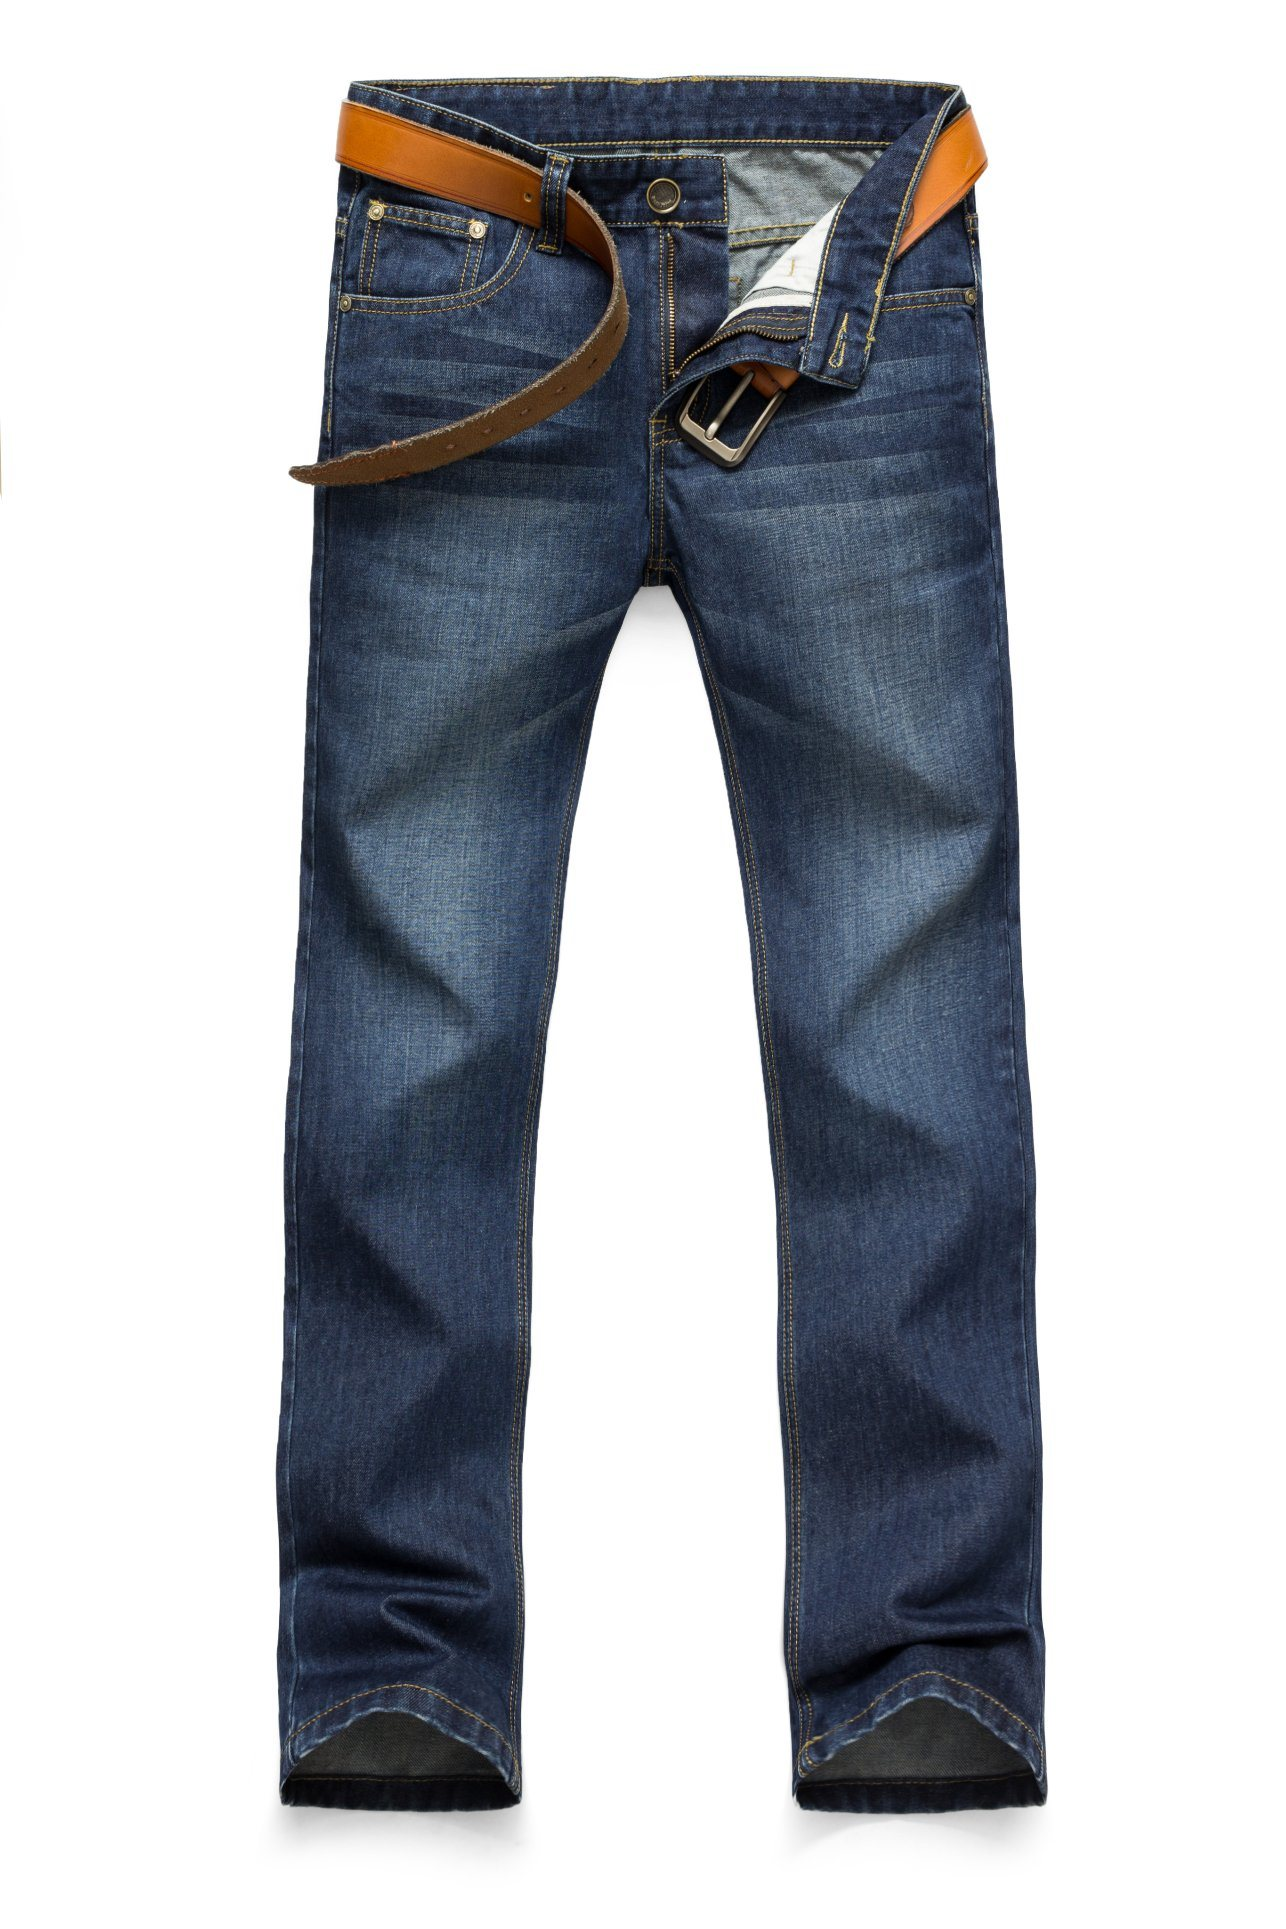 D031 Popular Fashion Casual Denim Jeans